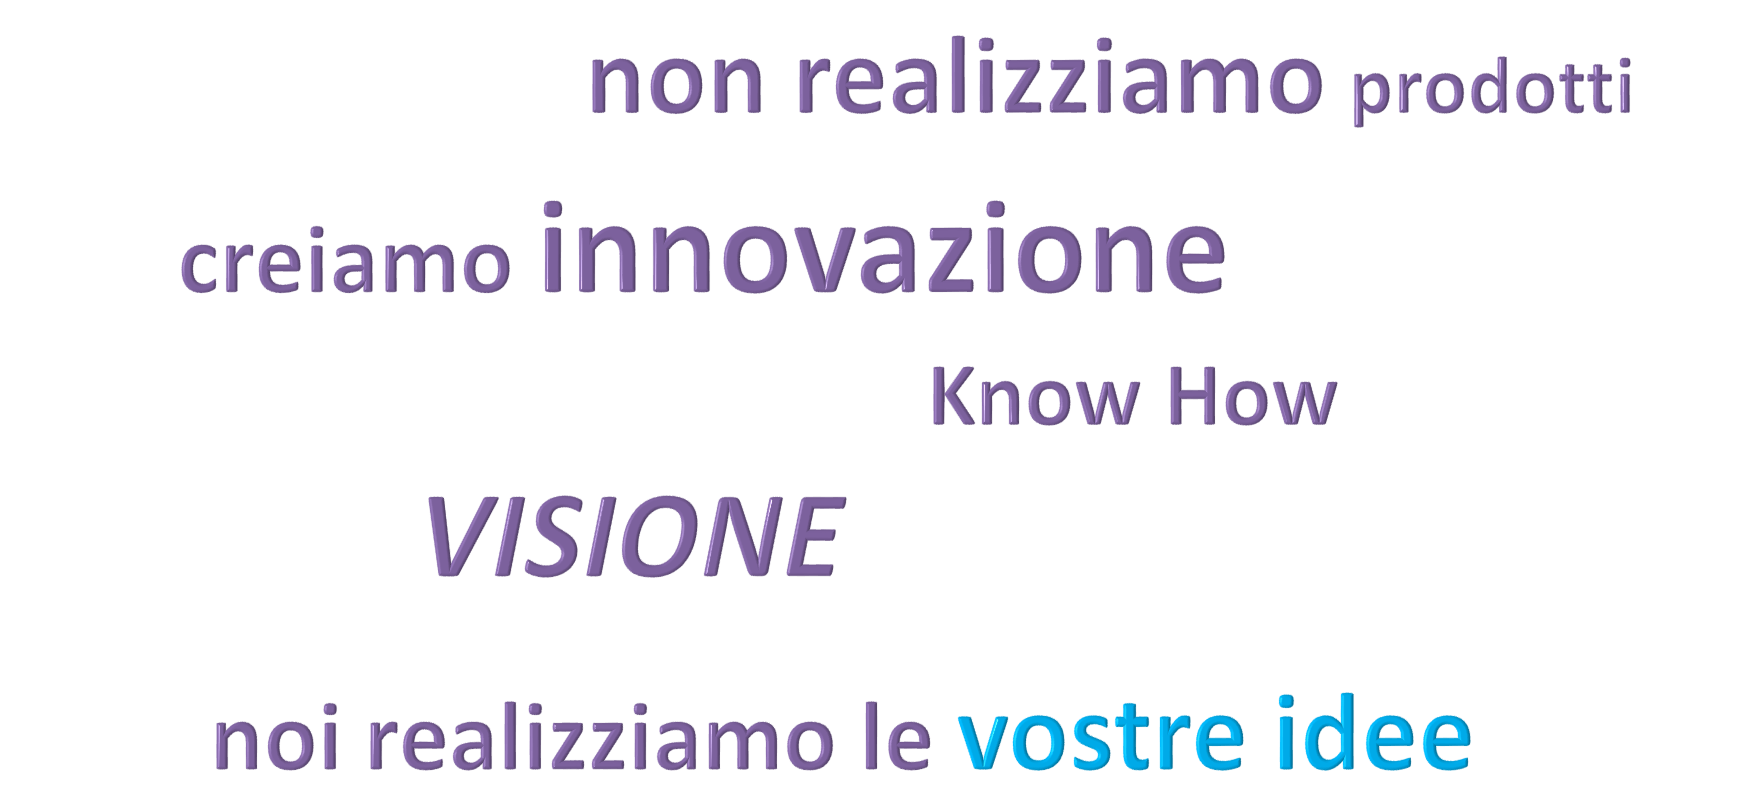 KnowHow-Visione